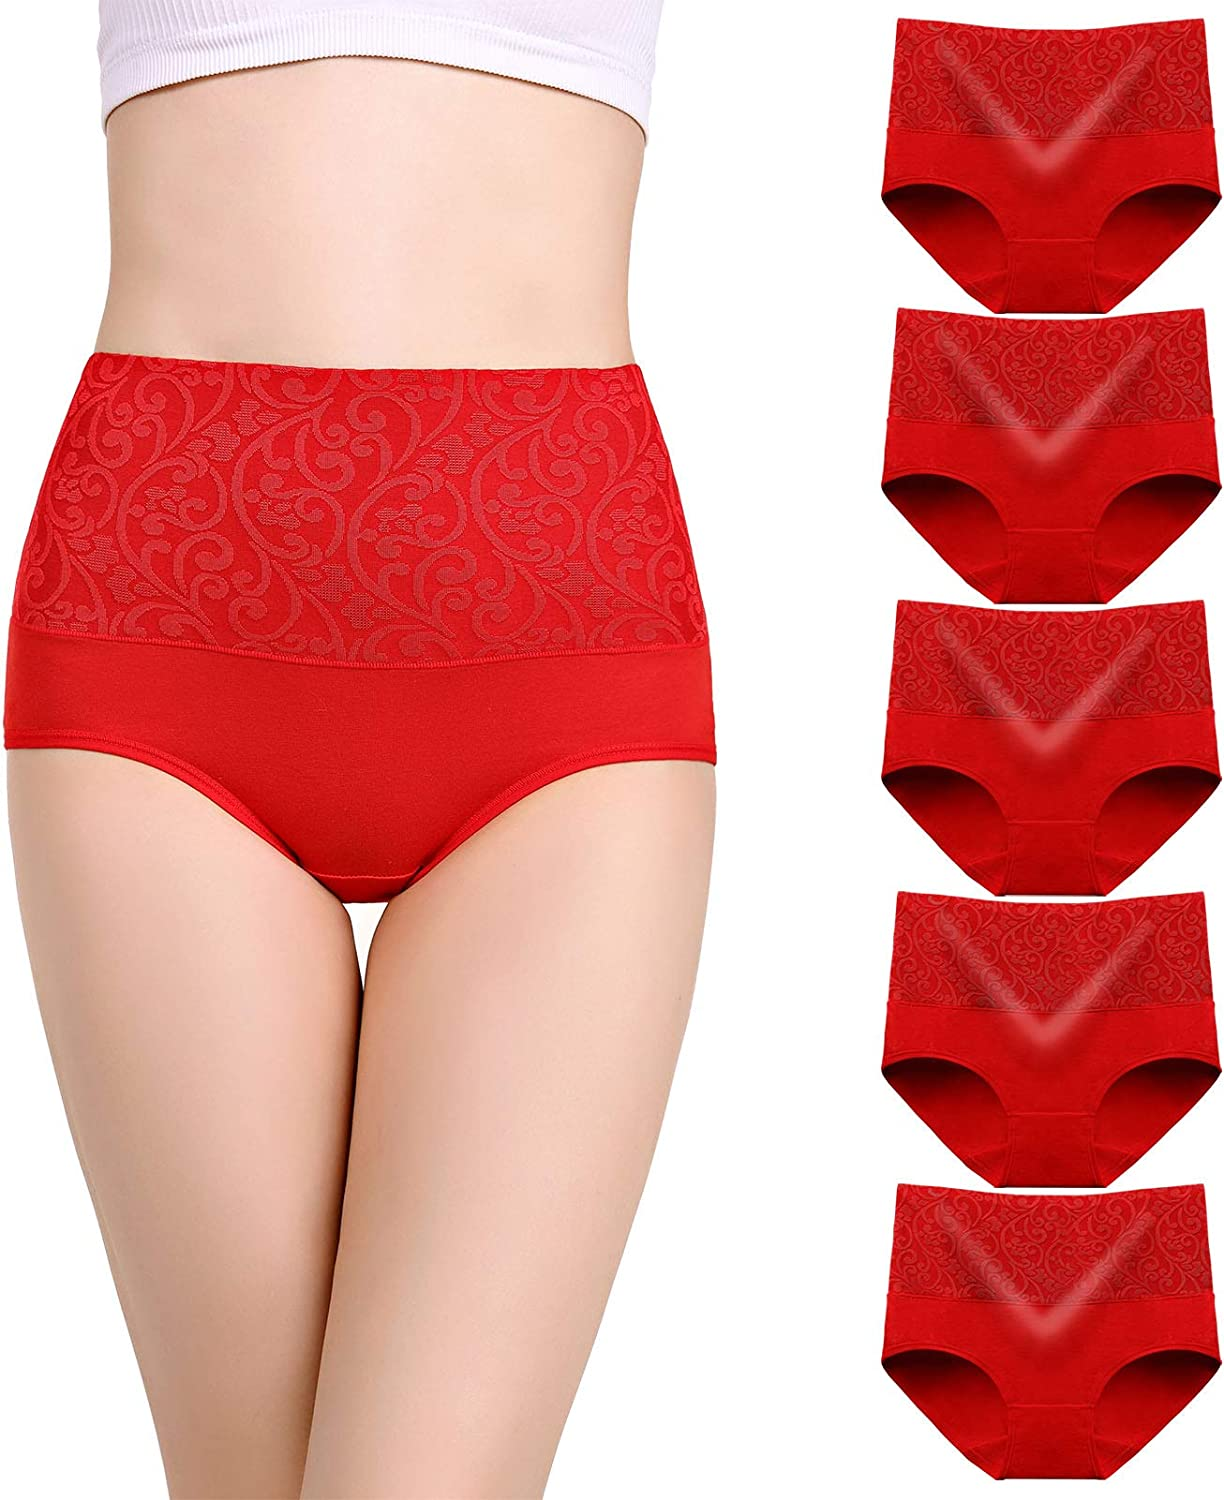 YOULEHE Women's Cotton Underwear Briefs High Waist Full Coverage Soft Breathable Panties at  Women's Clothing store